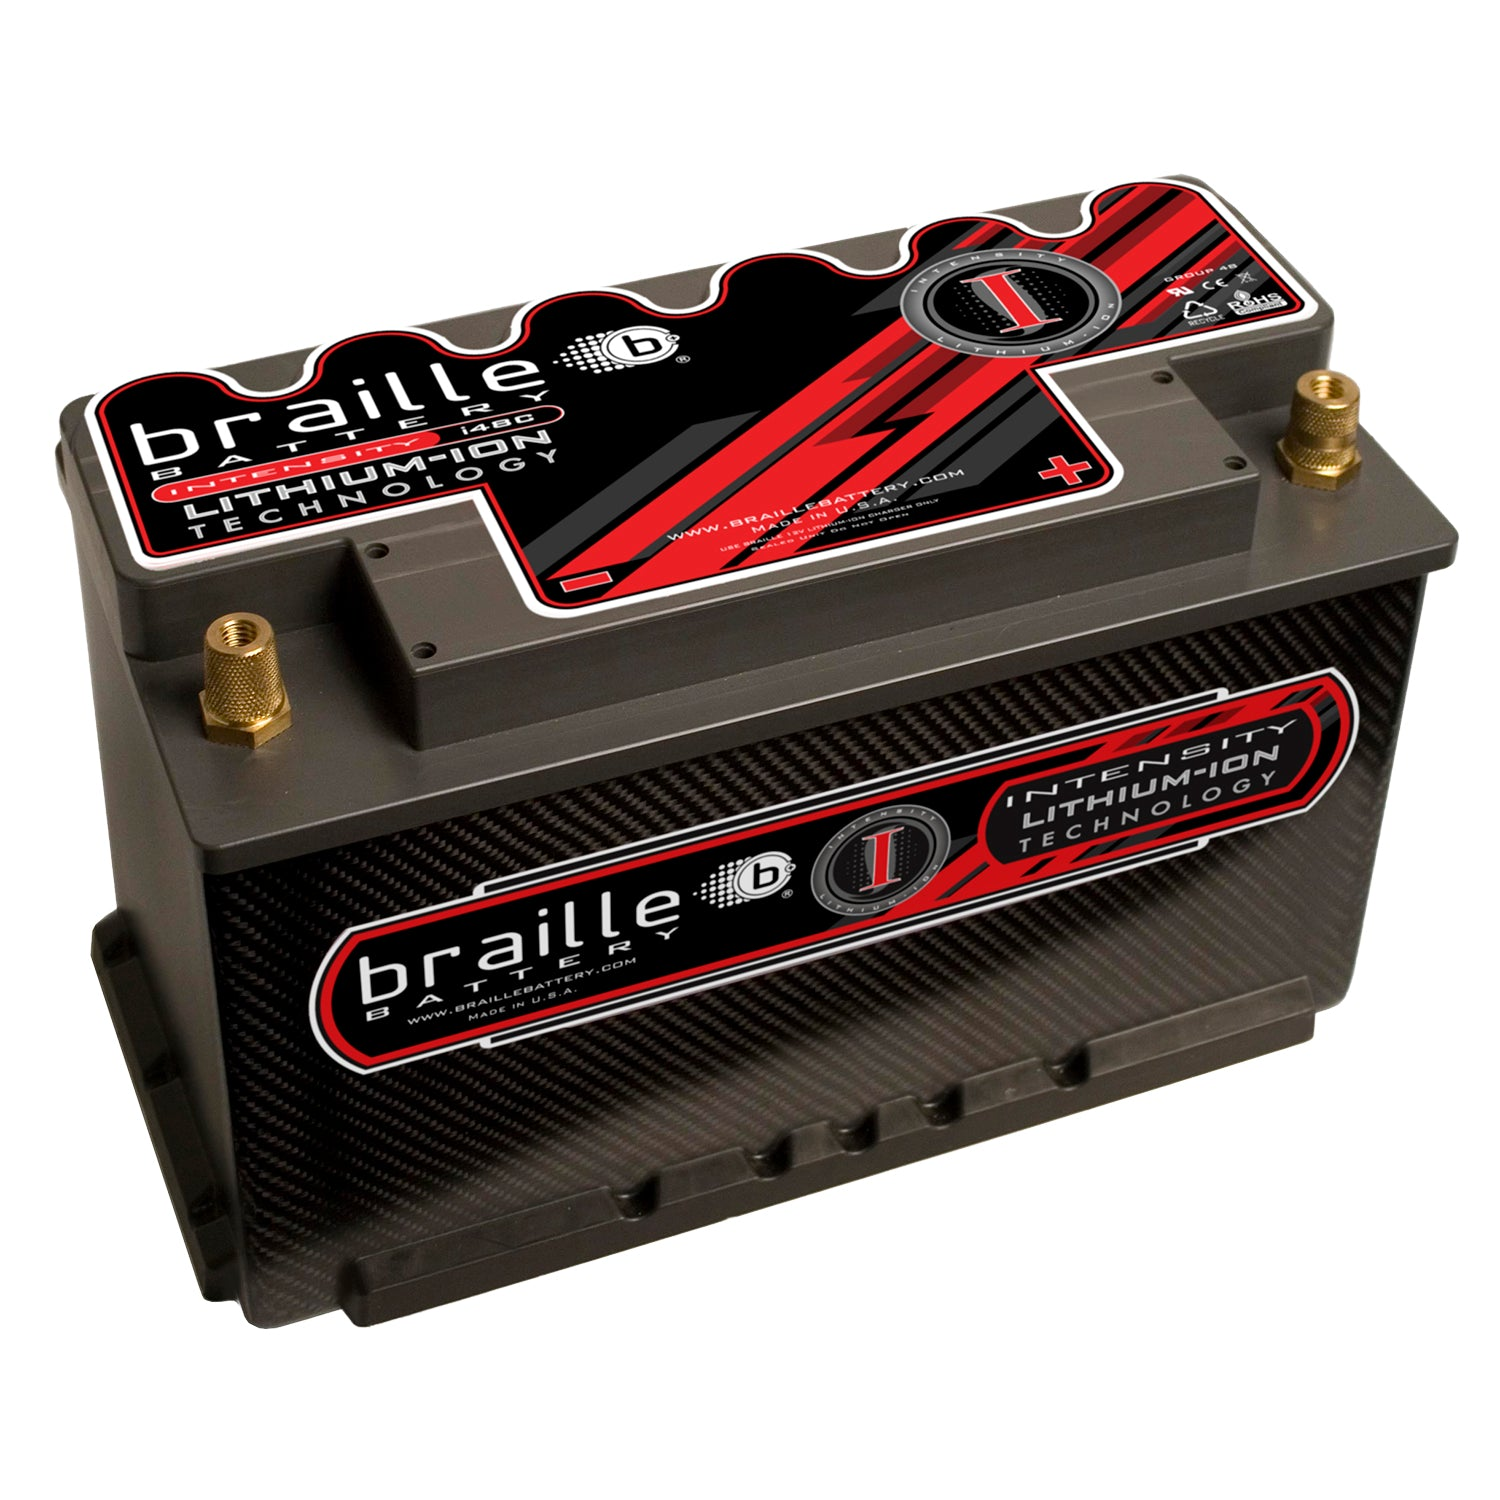 i48CS - Intensity Carbon Group 48 (MAX power & capacity) lithium battery